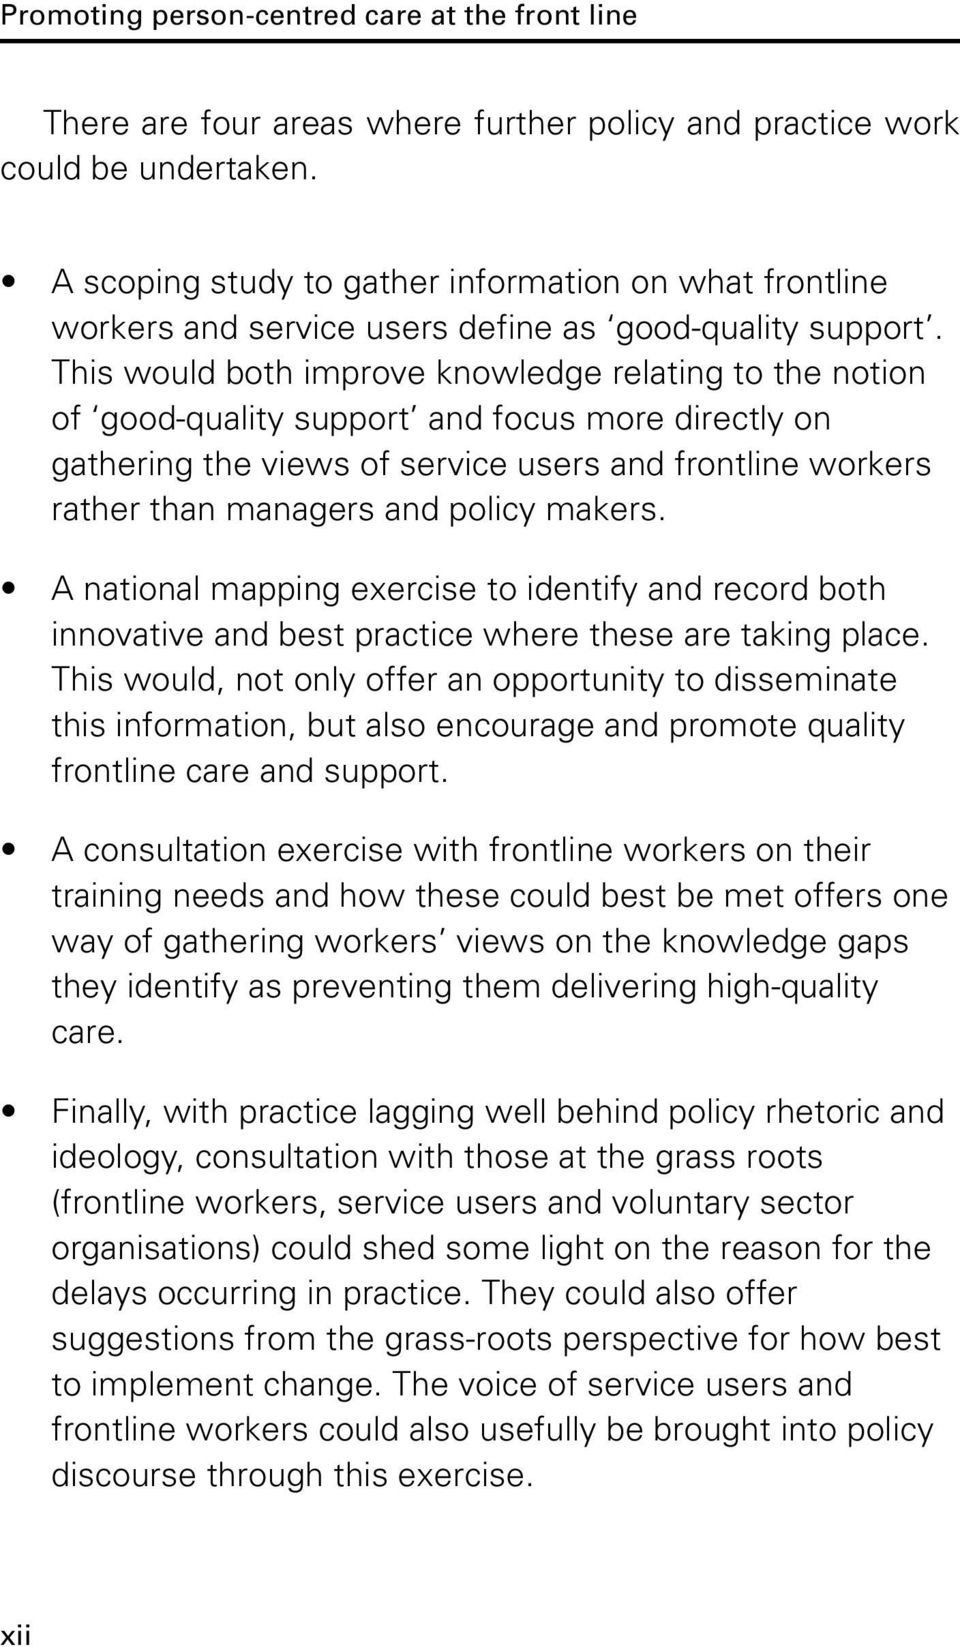 This would both improve knowledge relating to the notion of good-quality support and focus more directly on gathering the views of service users and frontline workers rather than managers and policy